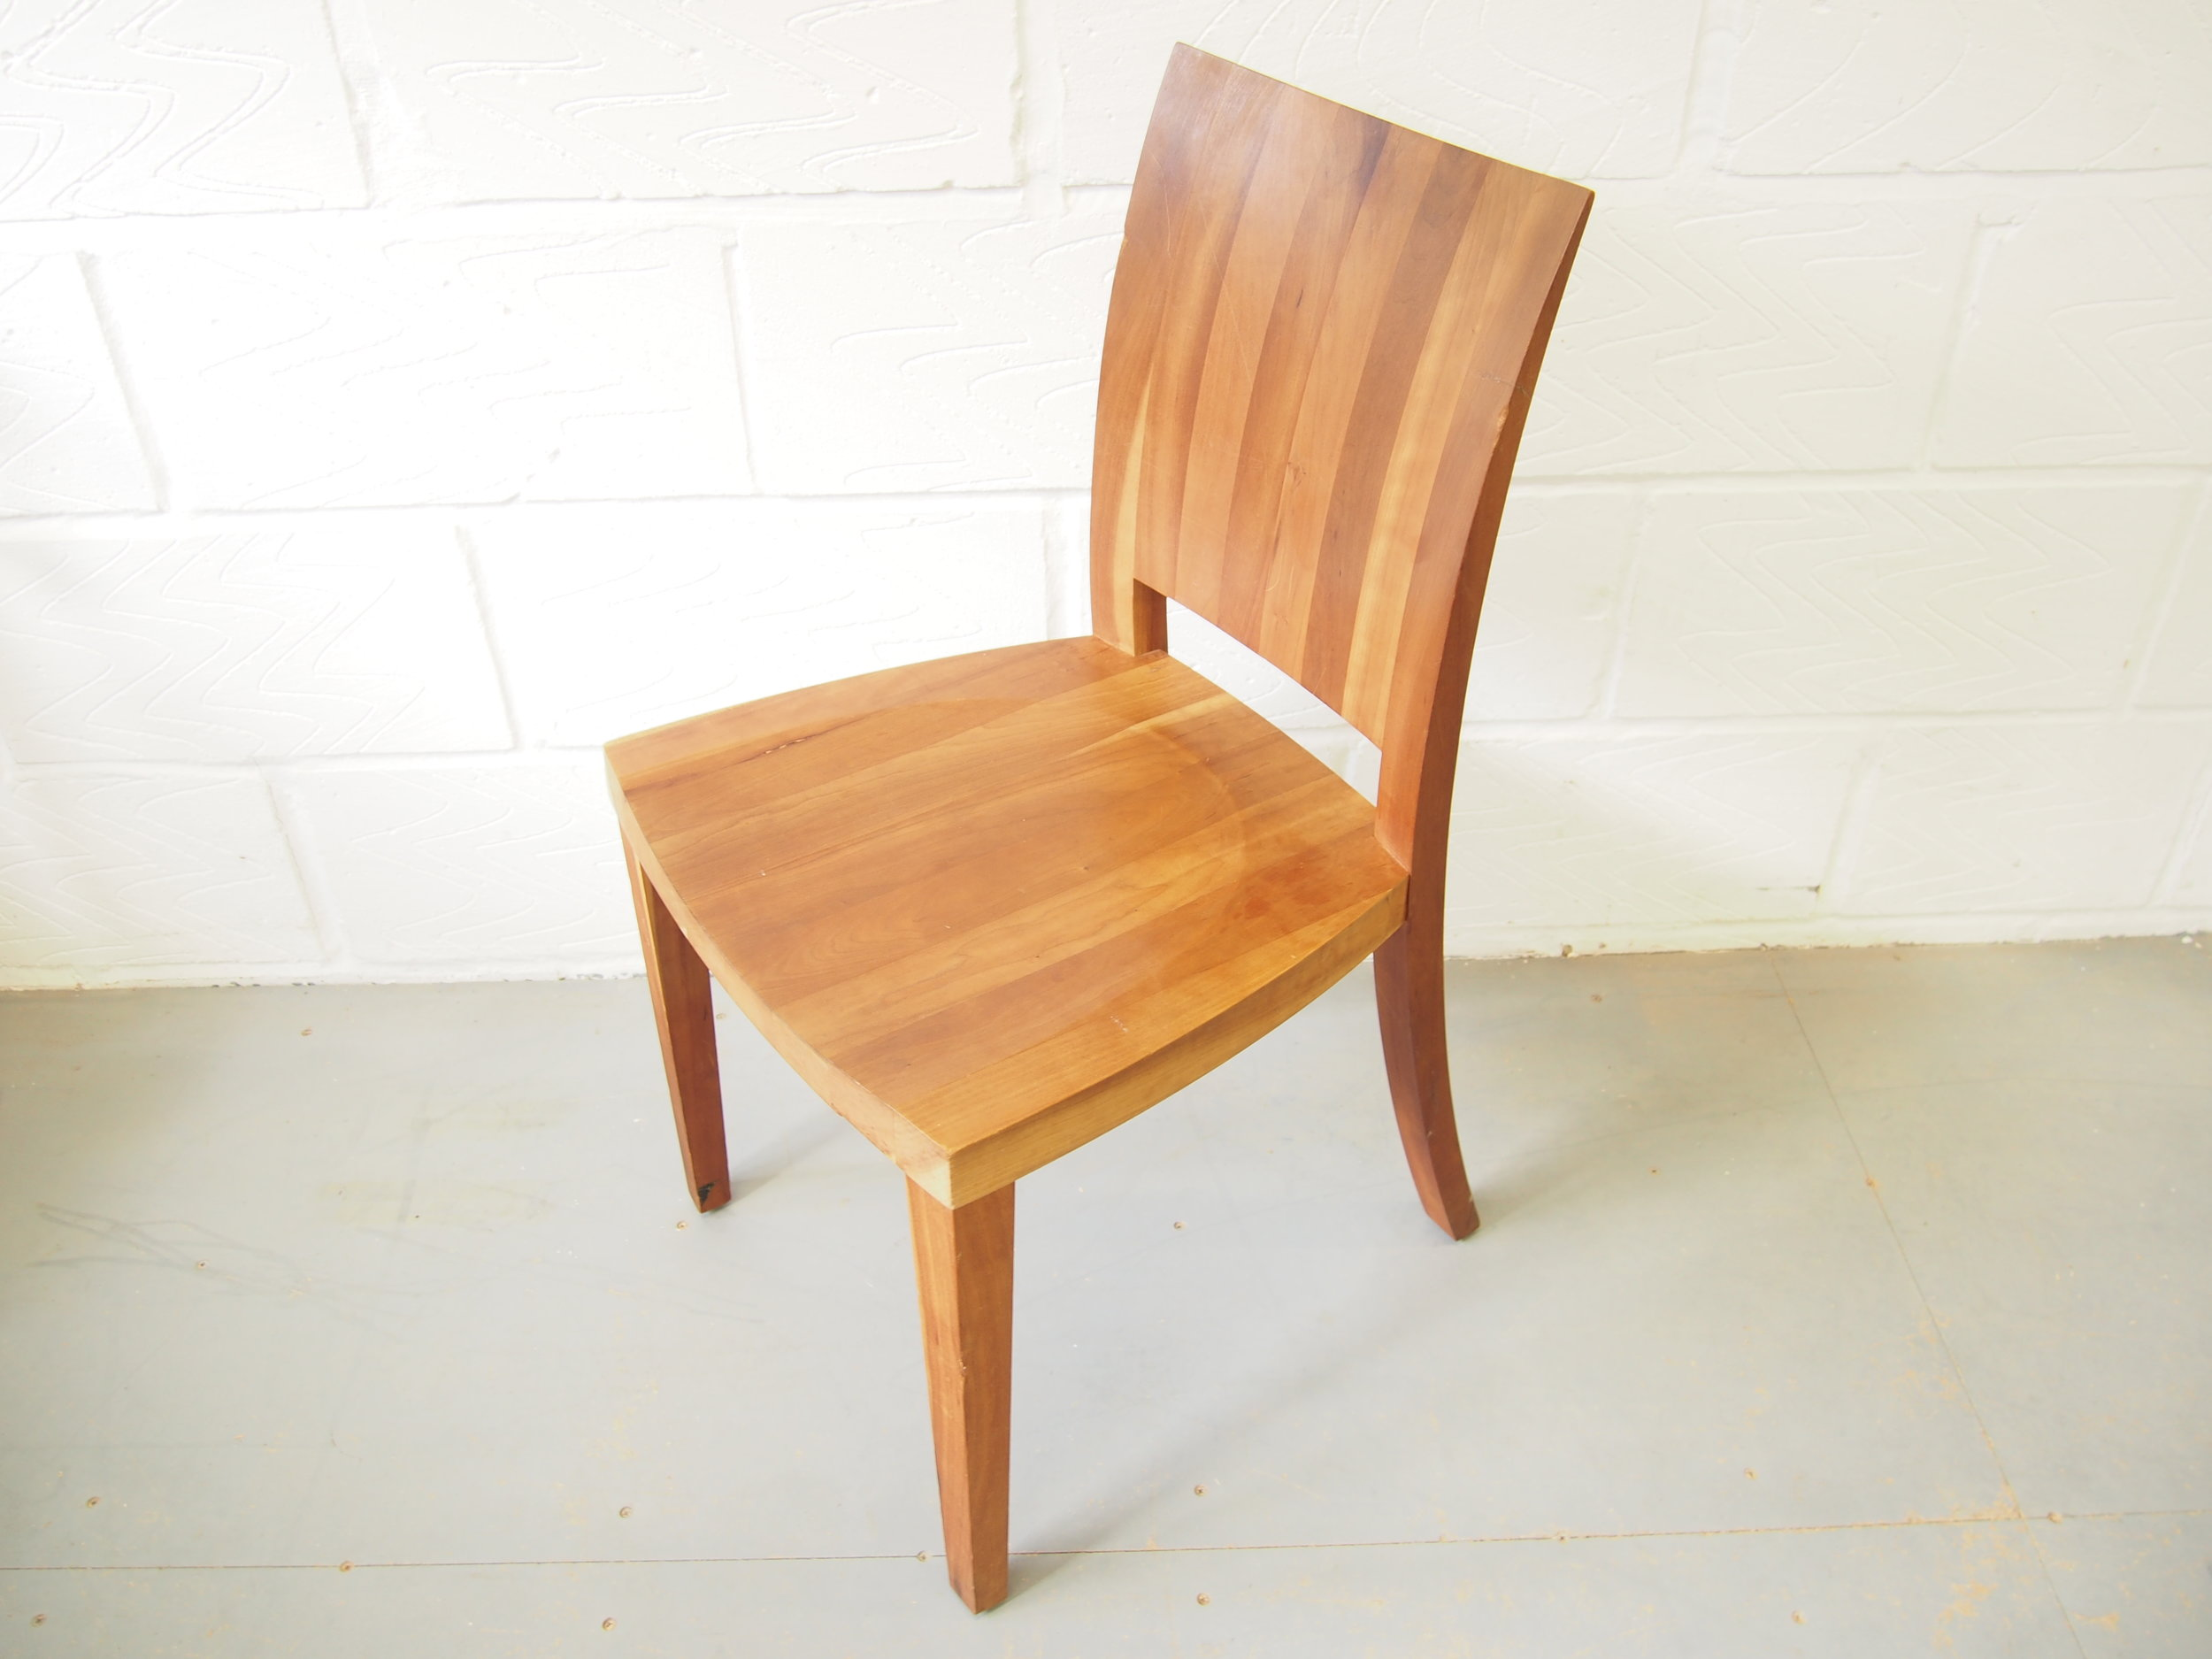 After Restoration of Danish 1920's Riva Set of Dining Chairs   Five chairs were presented with loose joints and a few chairs had broken parts which required reconstructing.